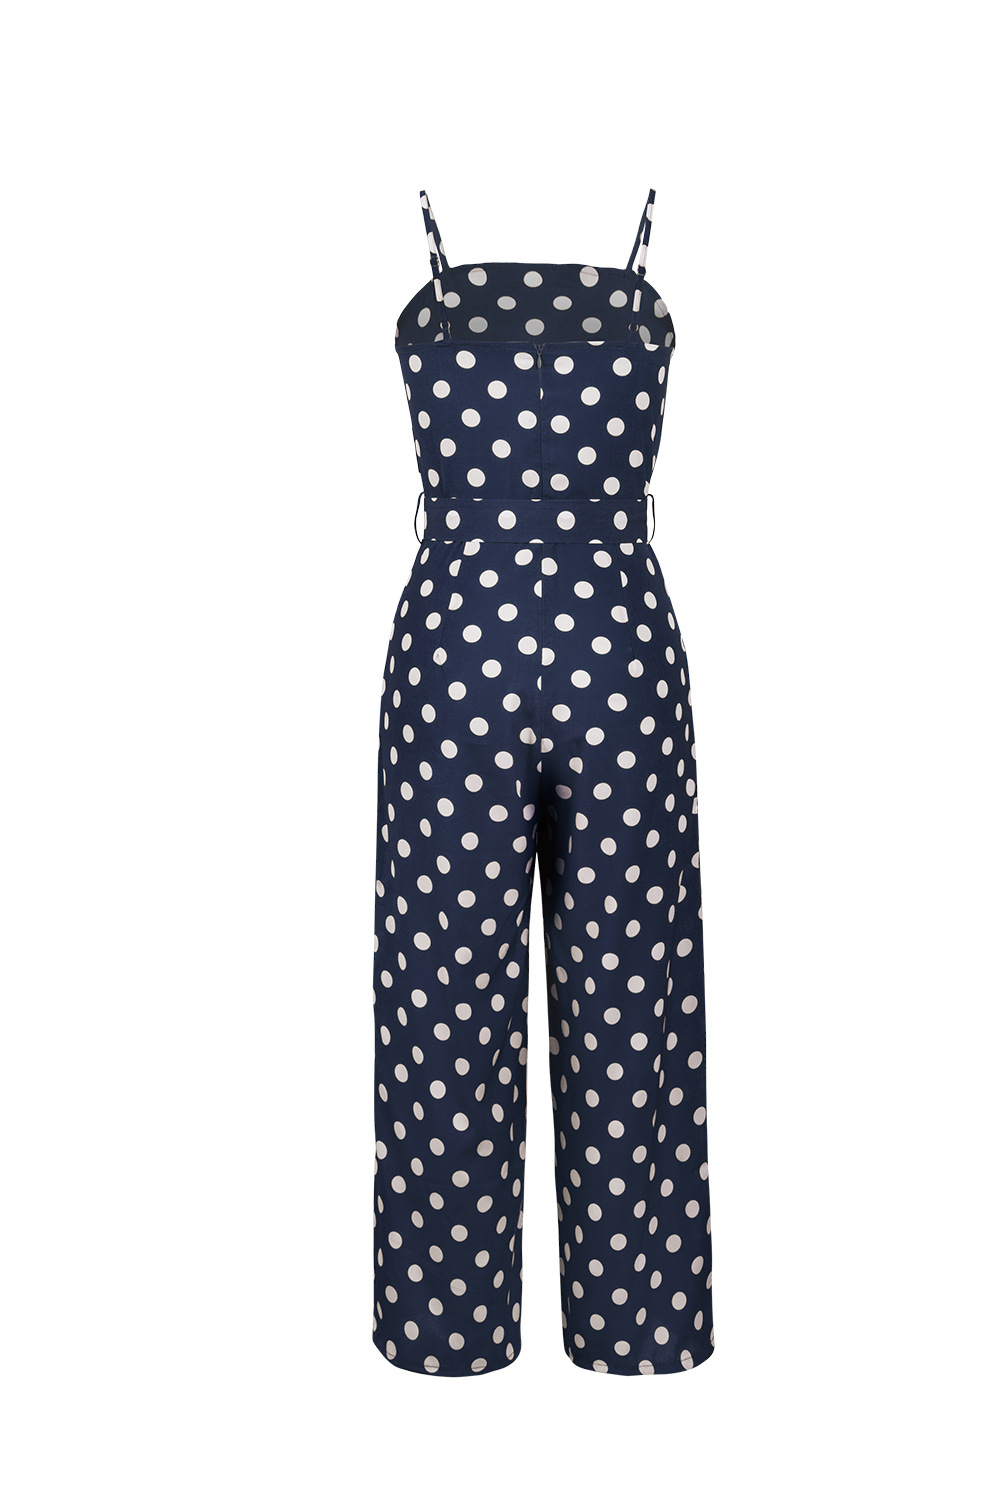 HTB16DkQbjDuK1Rjy1zjq6zraFXae - Women Rompers summer long pants elegant strap woman jumpsuits polka dot plus size jumpsuit off shoulder overalls for womens